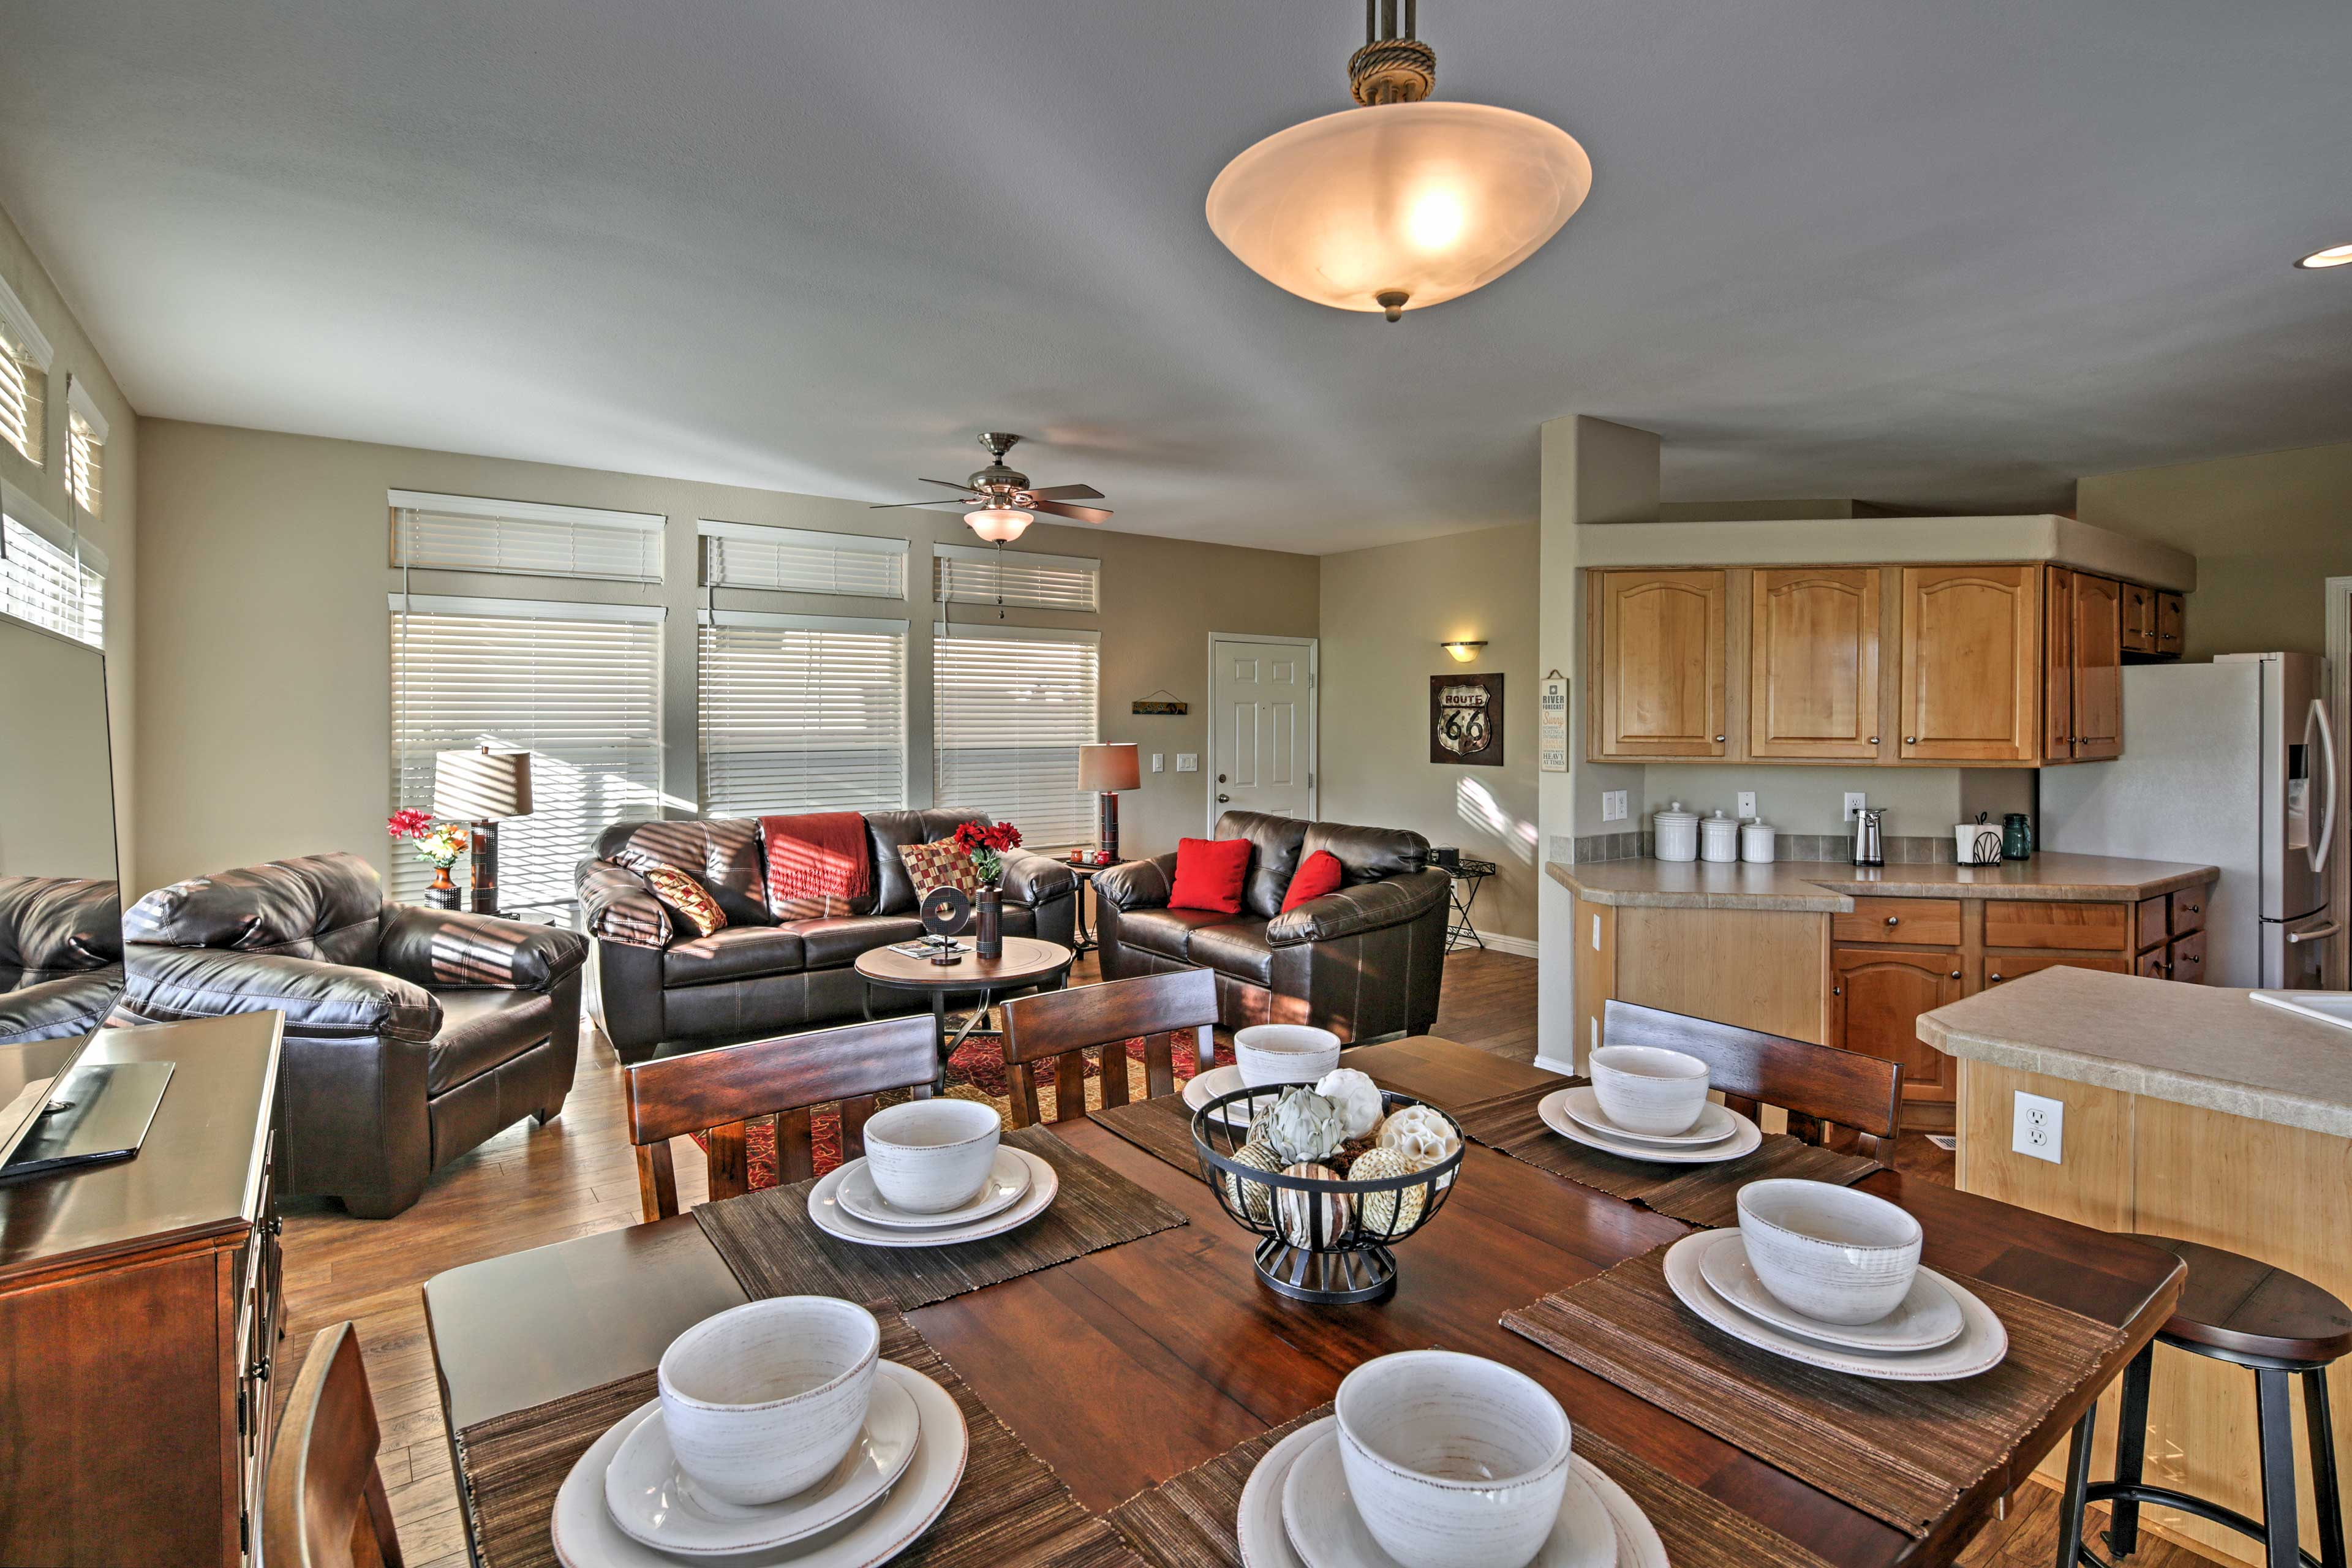 Dive into your mouthwatering meals at this gorgeous dining room table.